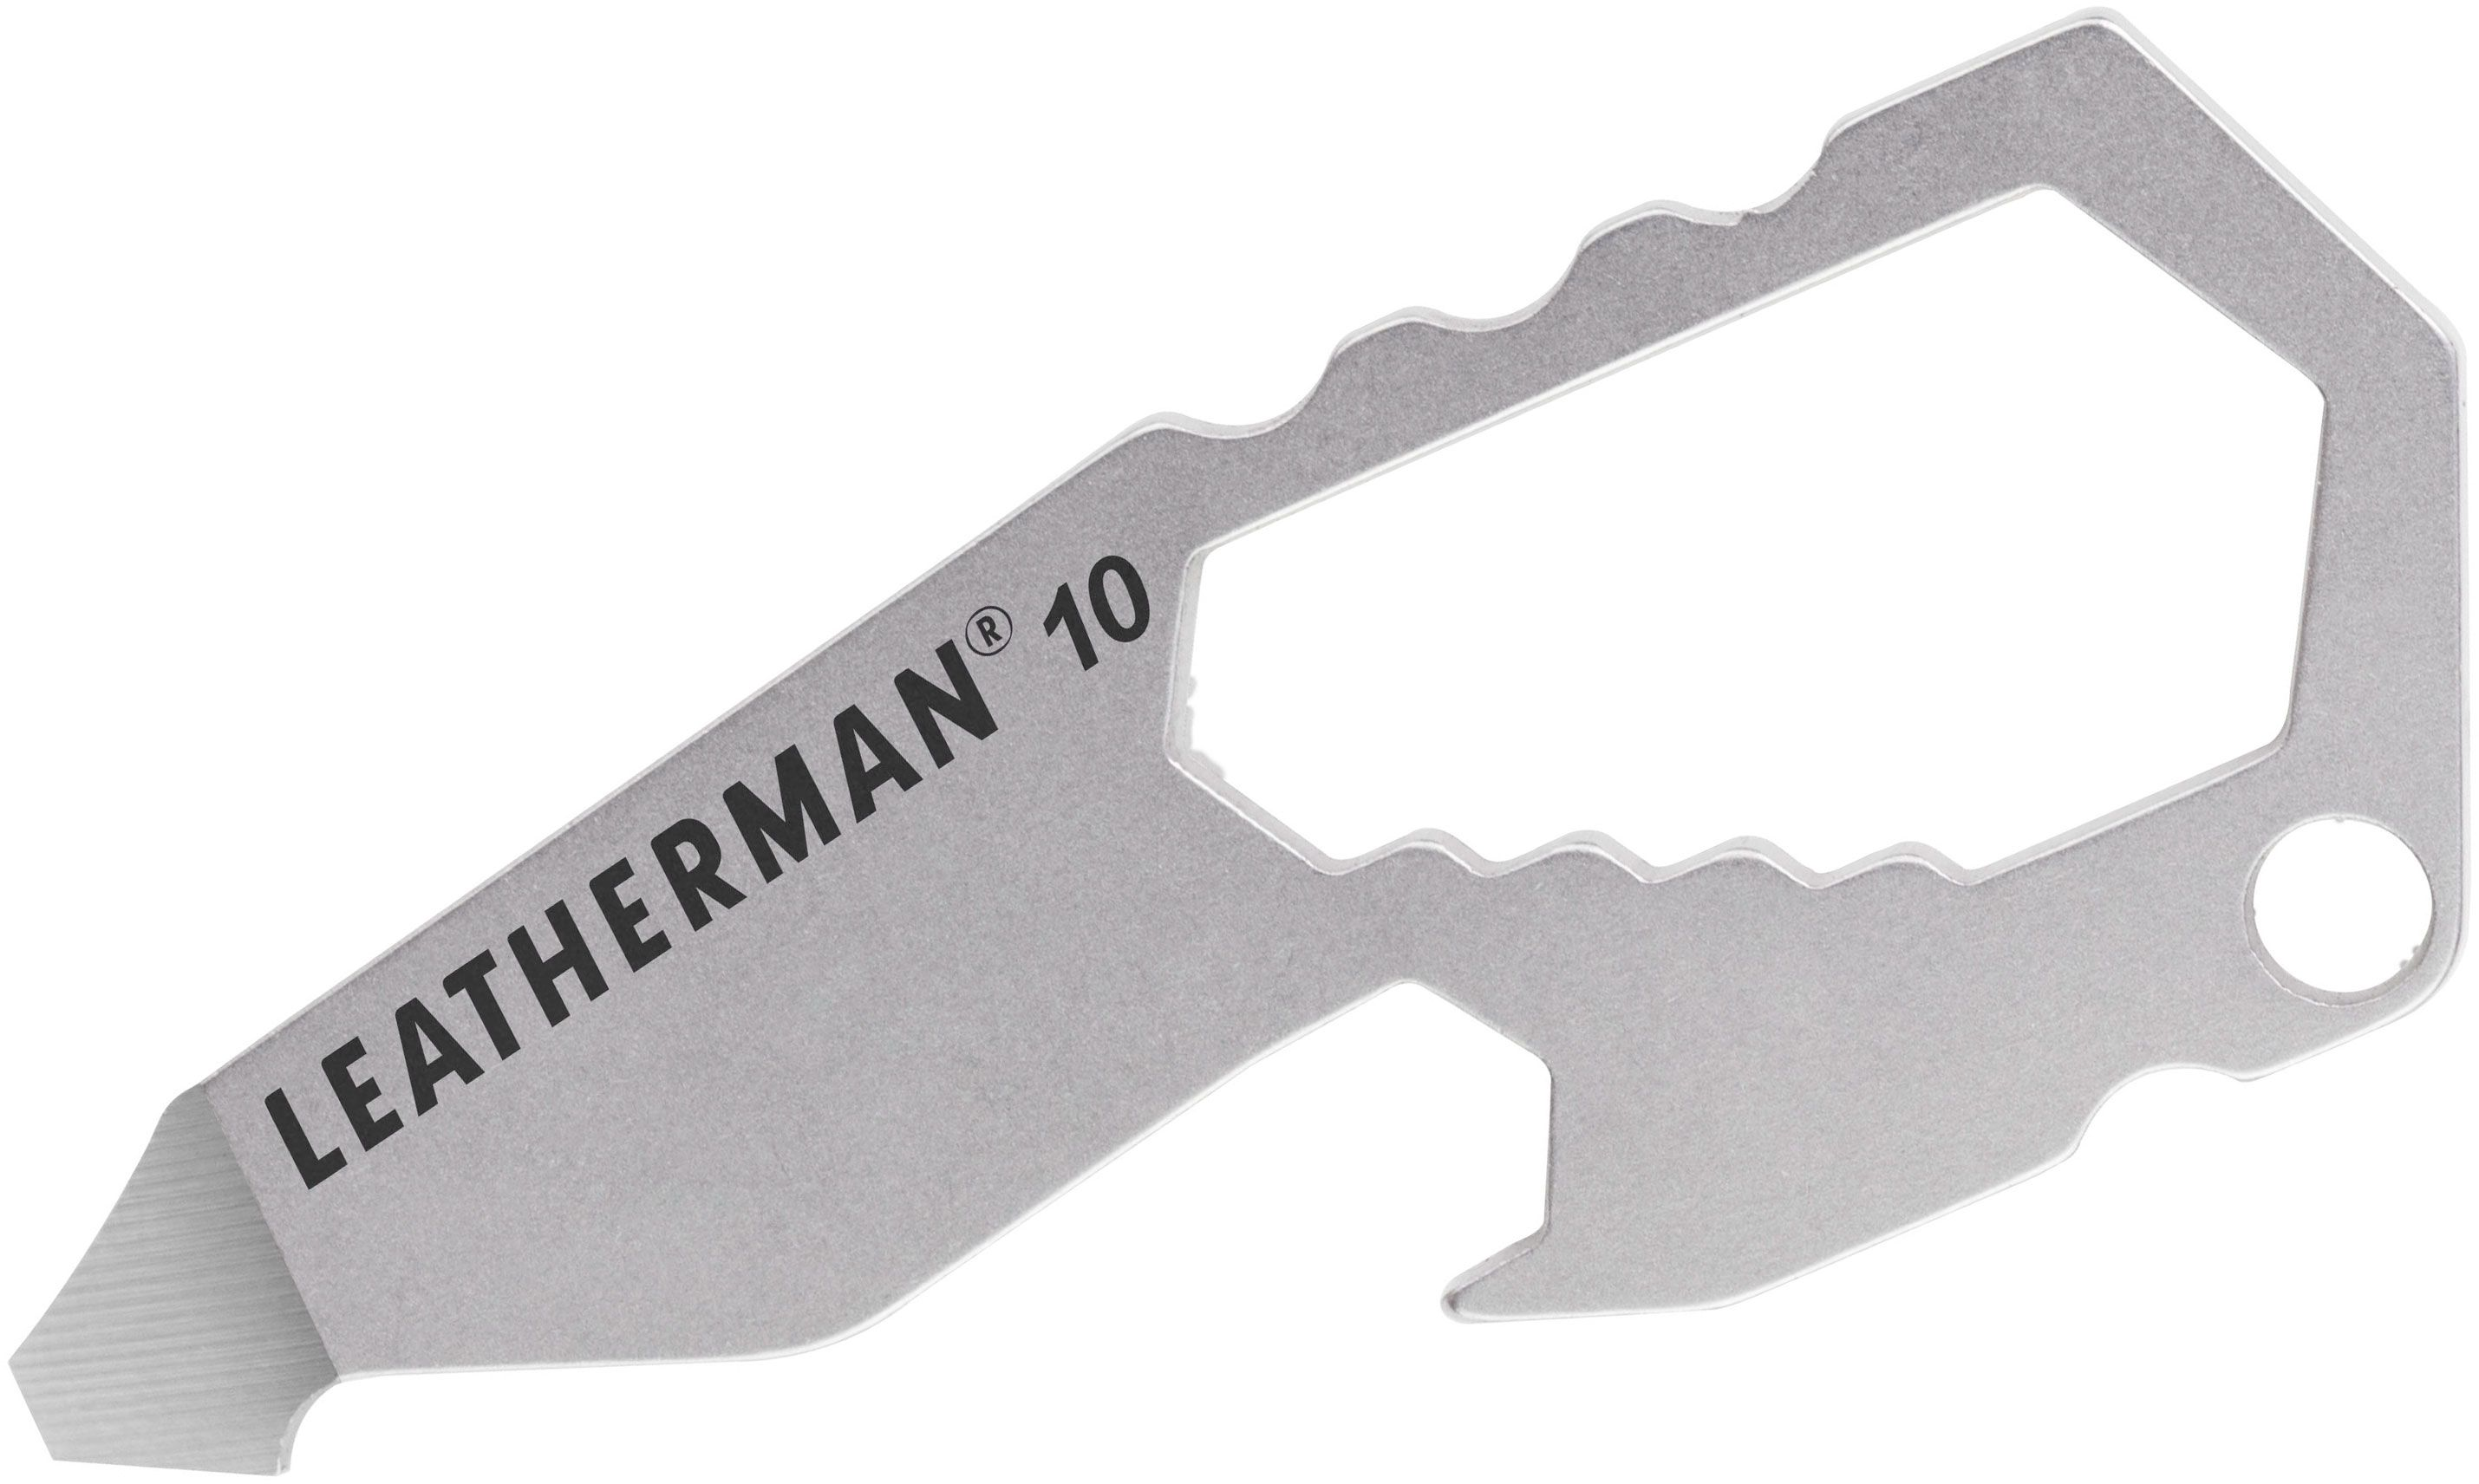 Leatherman Number 10 Keychain Size Mini Multi-Tool